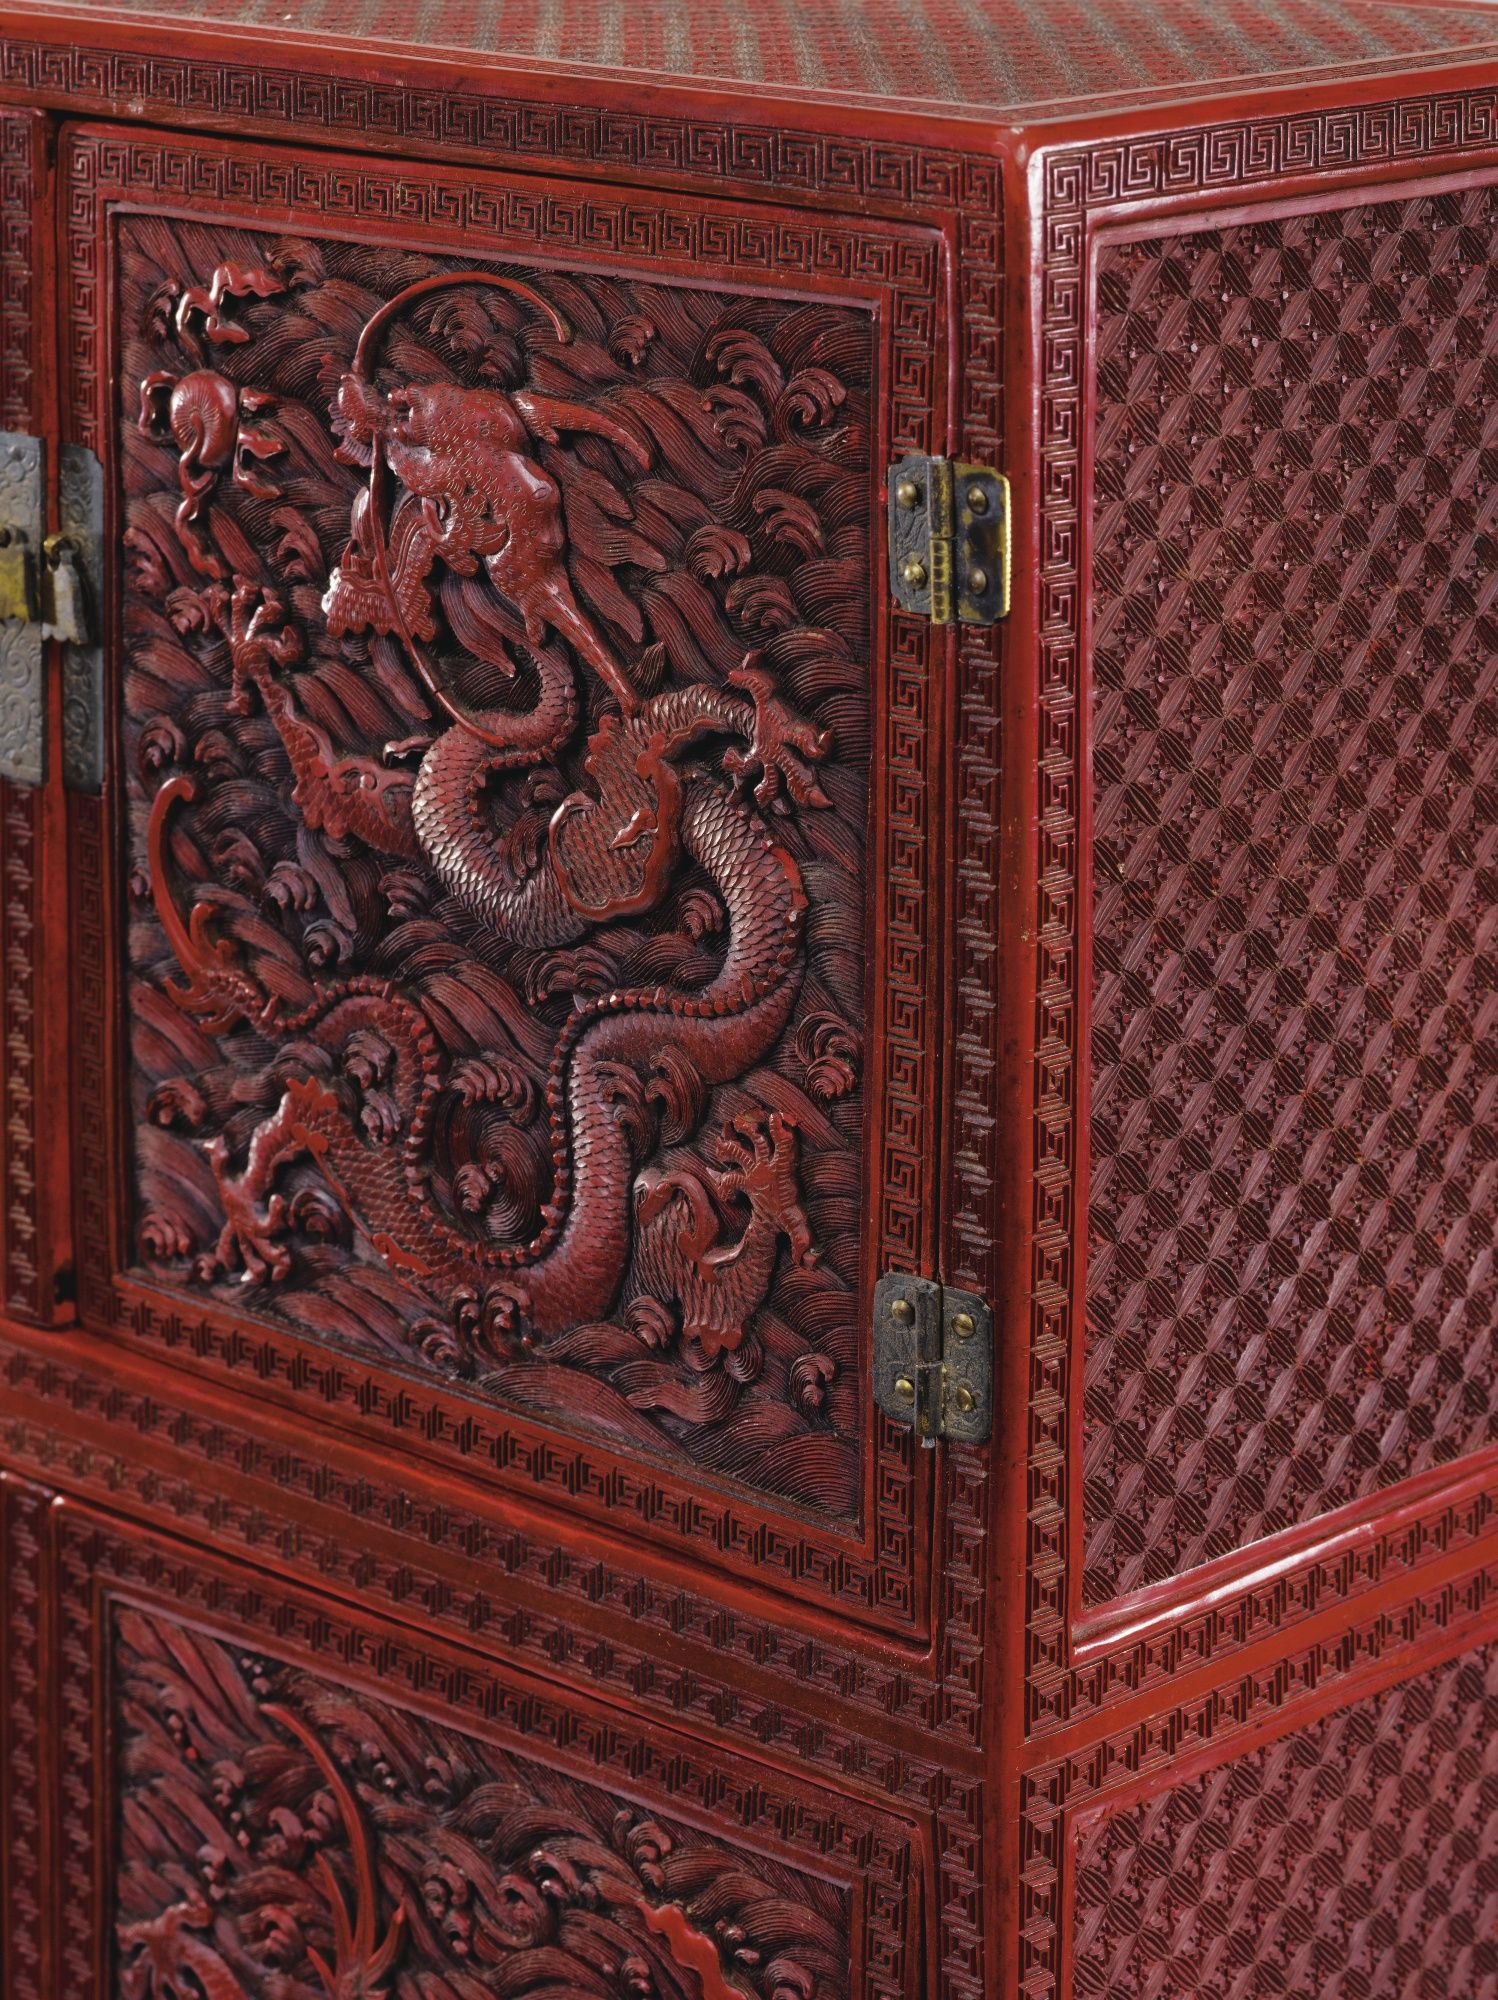 Muebles Chinos Antiguos A Small Carved Cinnabar Lacquer Cabinet Qing Dynasty